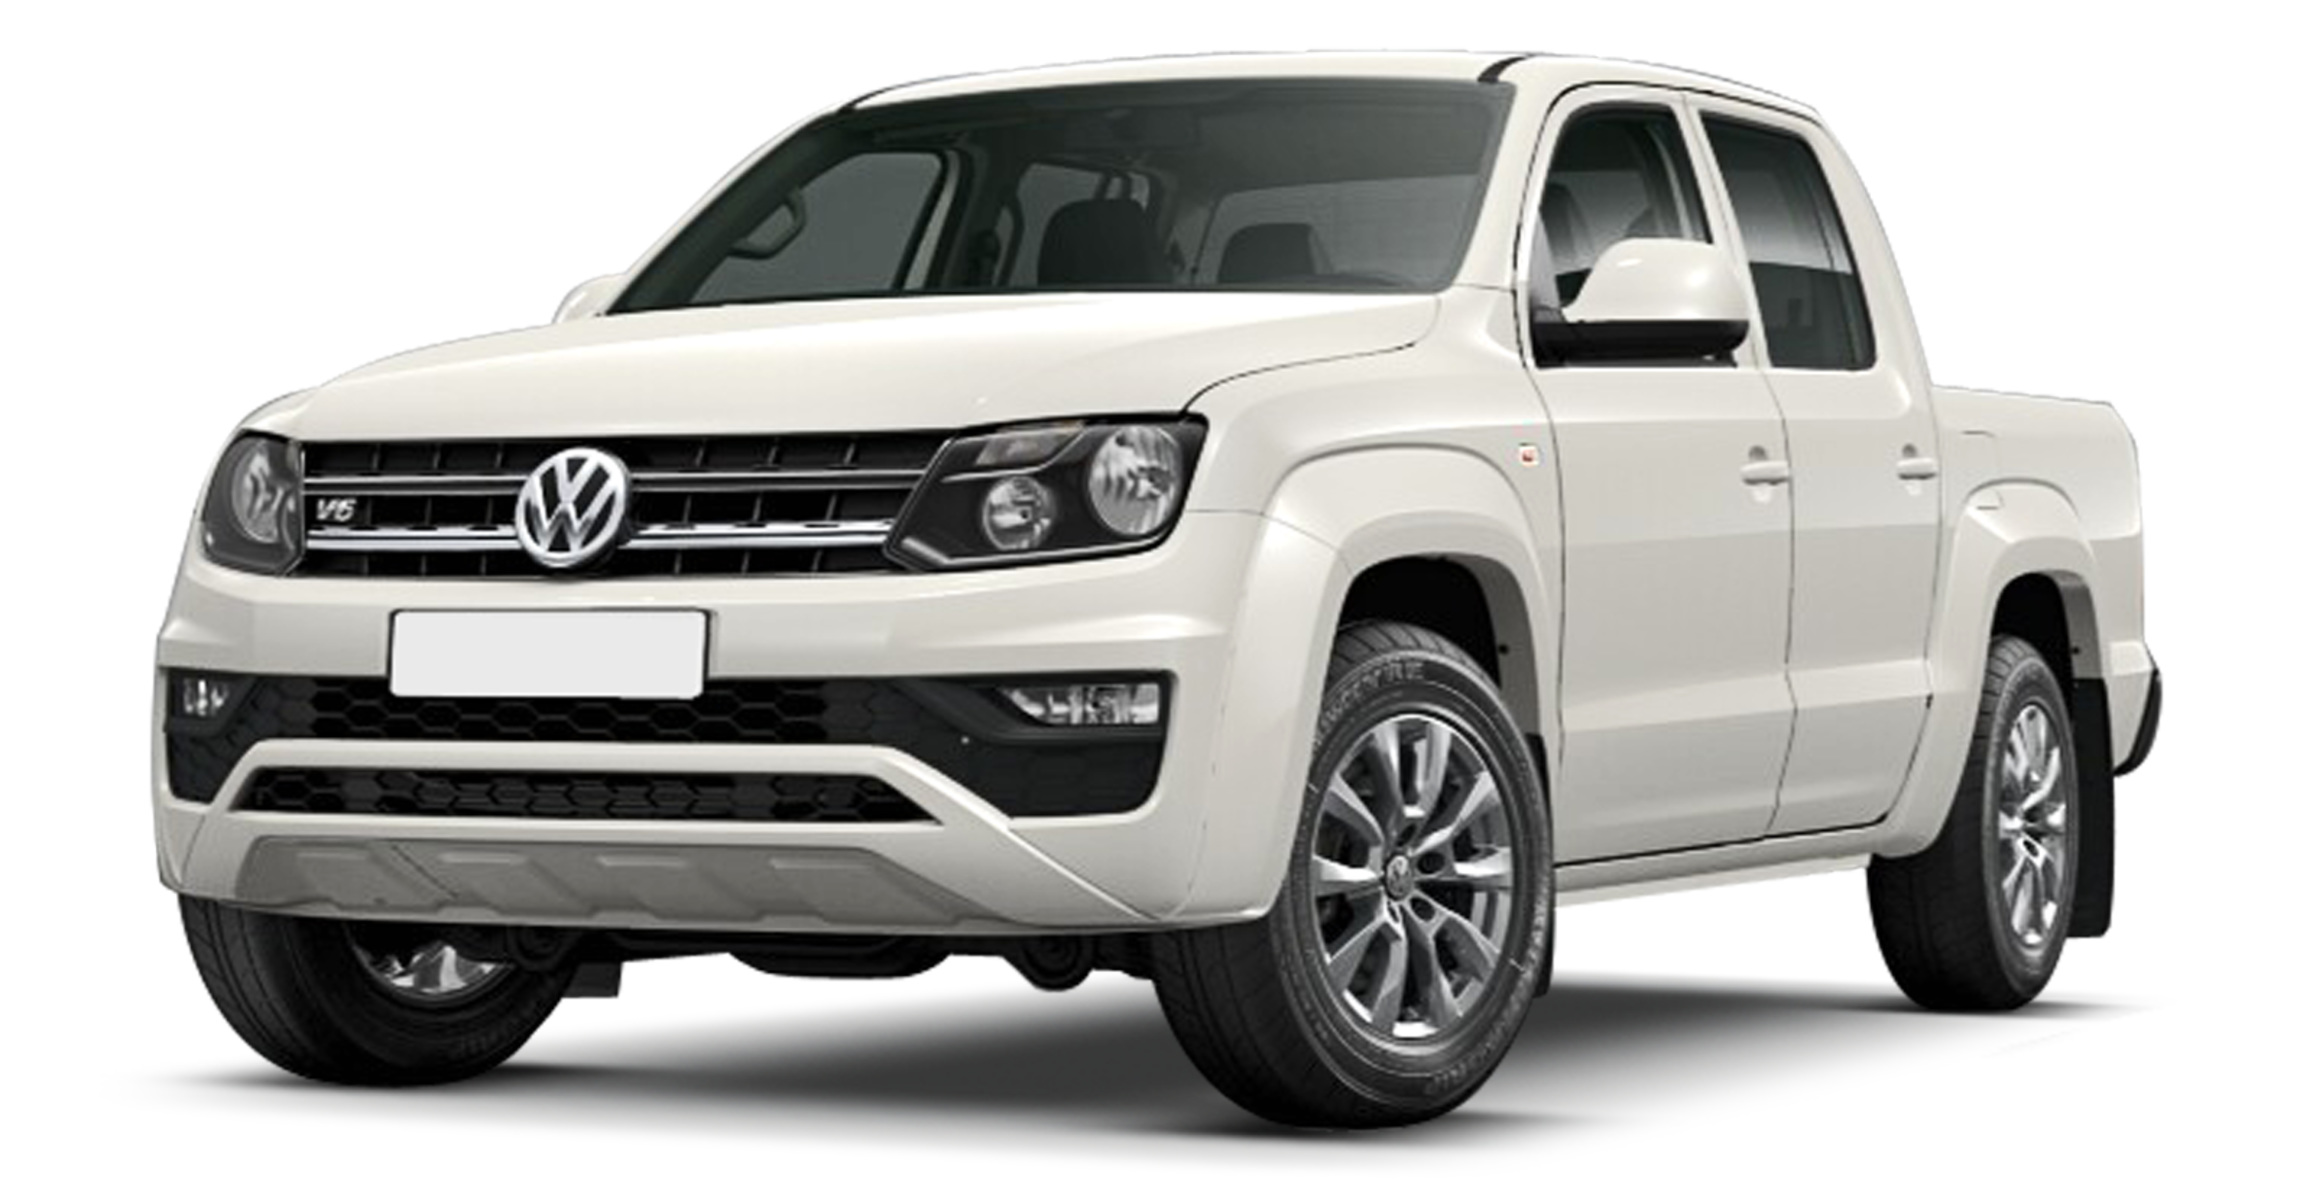 listino volkswagen amarok prezzo scheda tecnica consumi foto. Black Bedroom Furniture Sets. Home Design Ideas